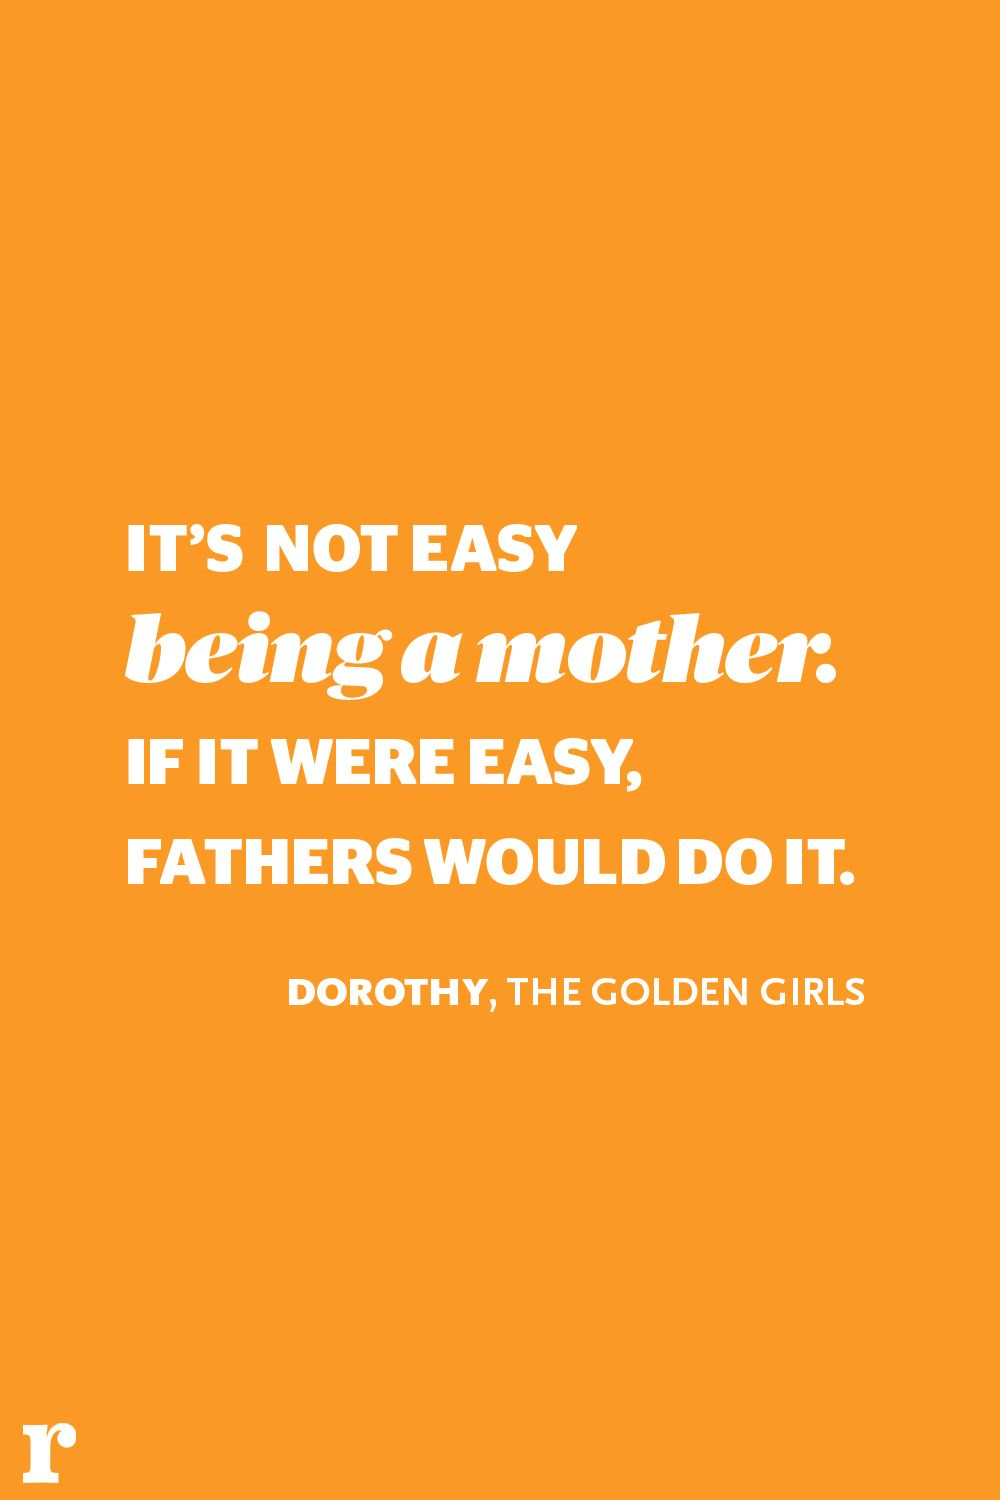 17 Best Mother\'s Day Quotes - Heartfelt Quotes for Mom on ...